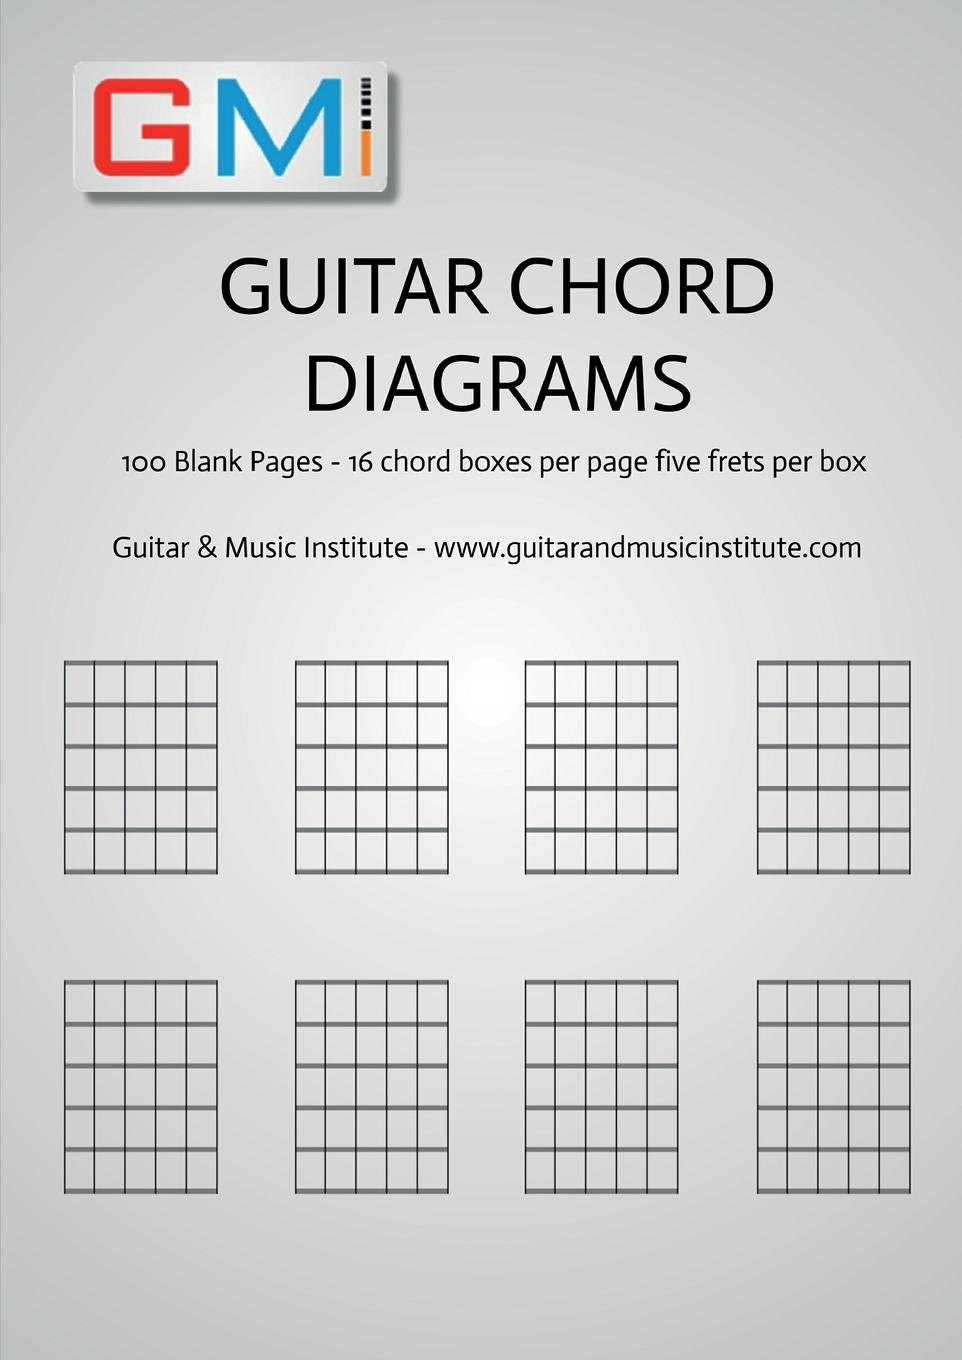 Ged Brockie Guitar Chord Diagrams. 100 Pages - 16 chord boxes per page five frets per box kitfort kt 602 1